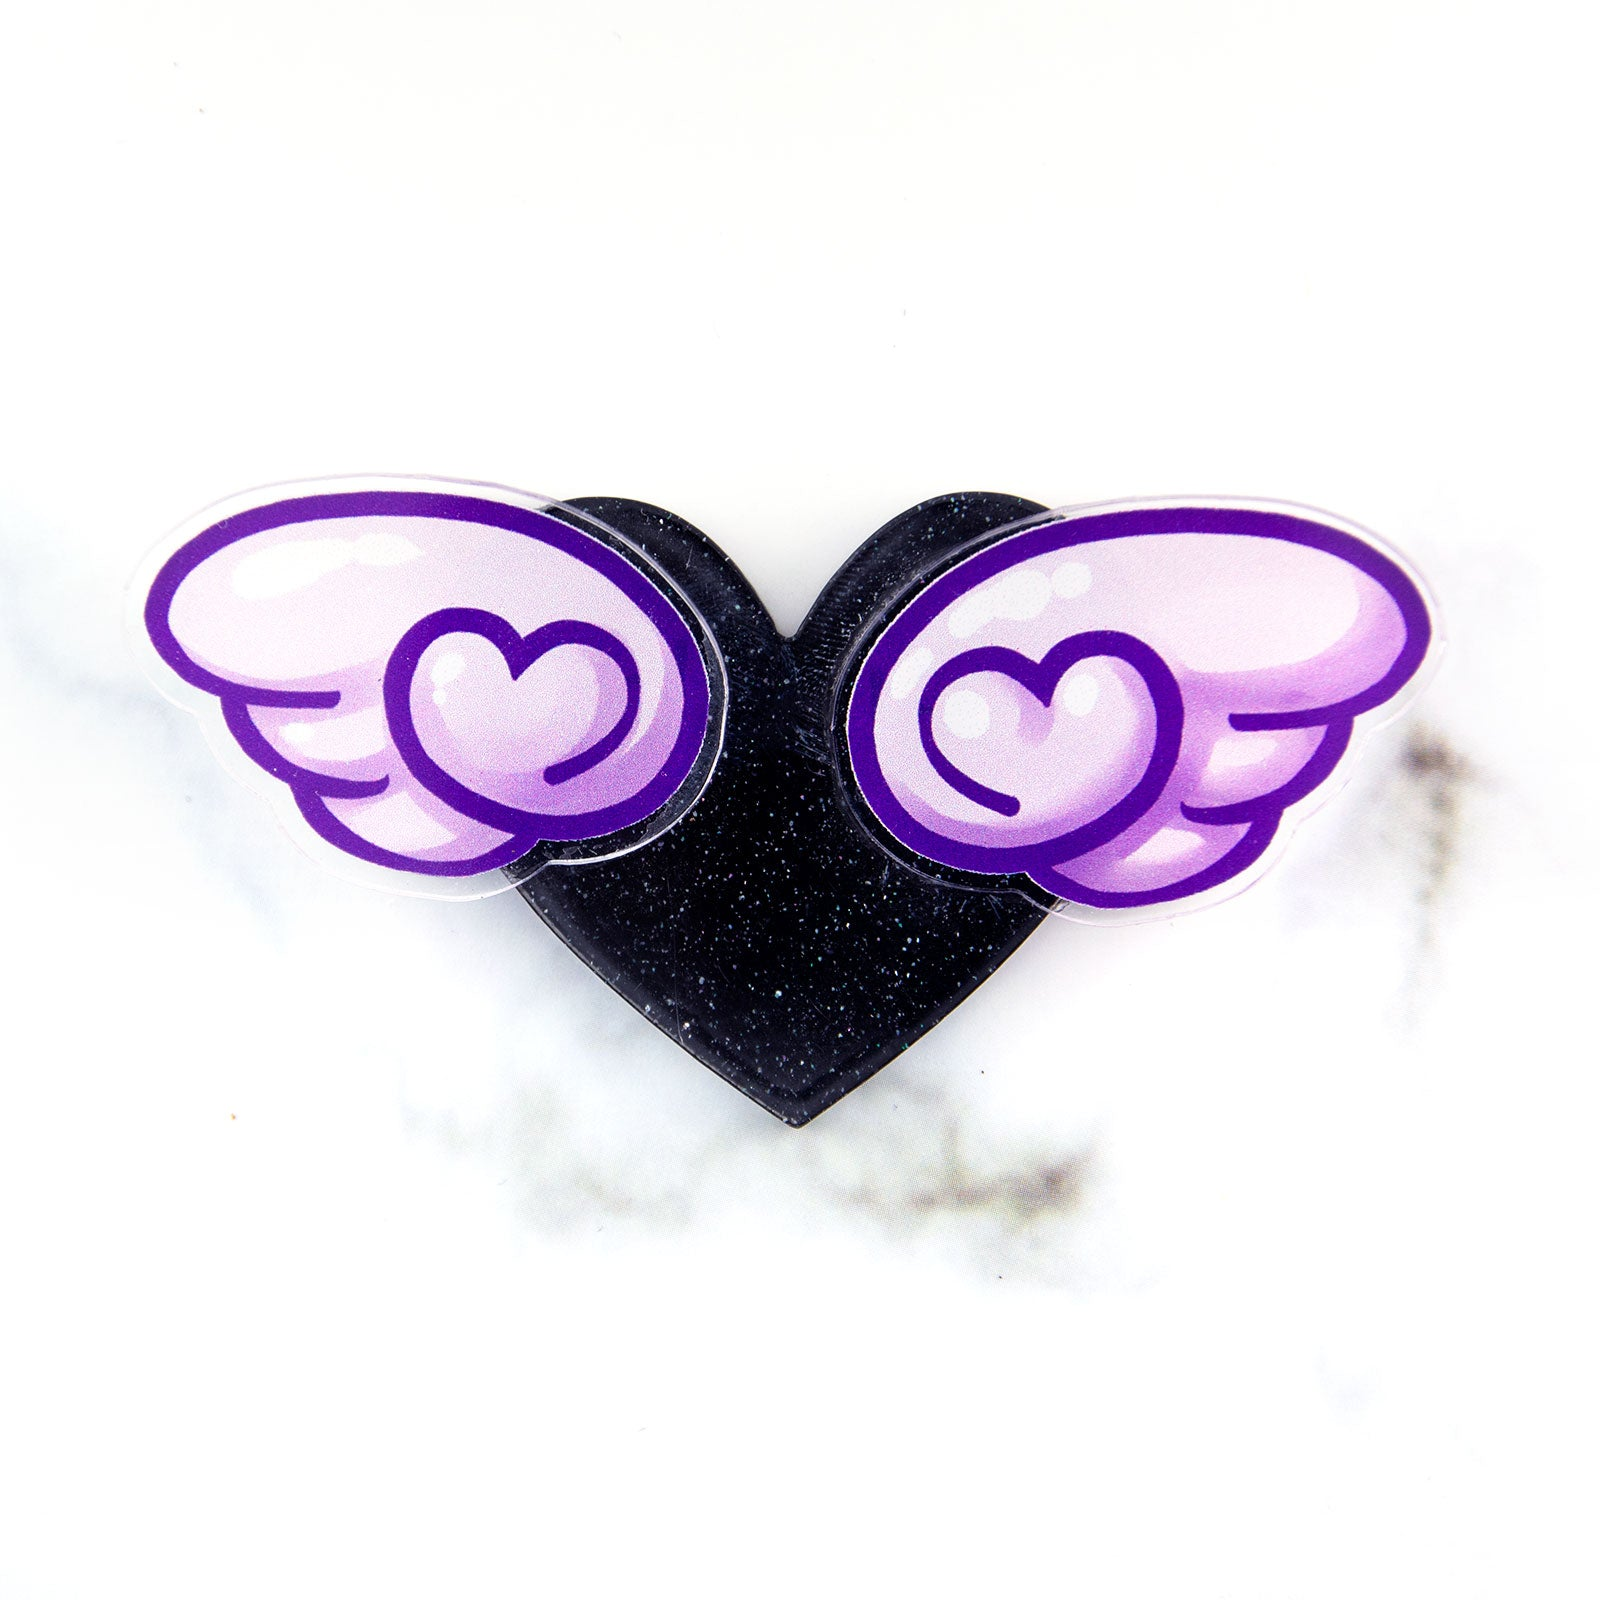 Winged heart brooch - purple wings